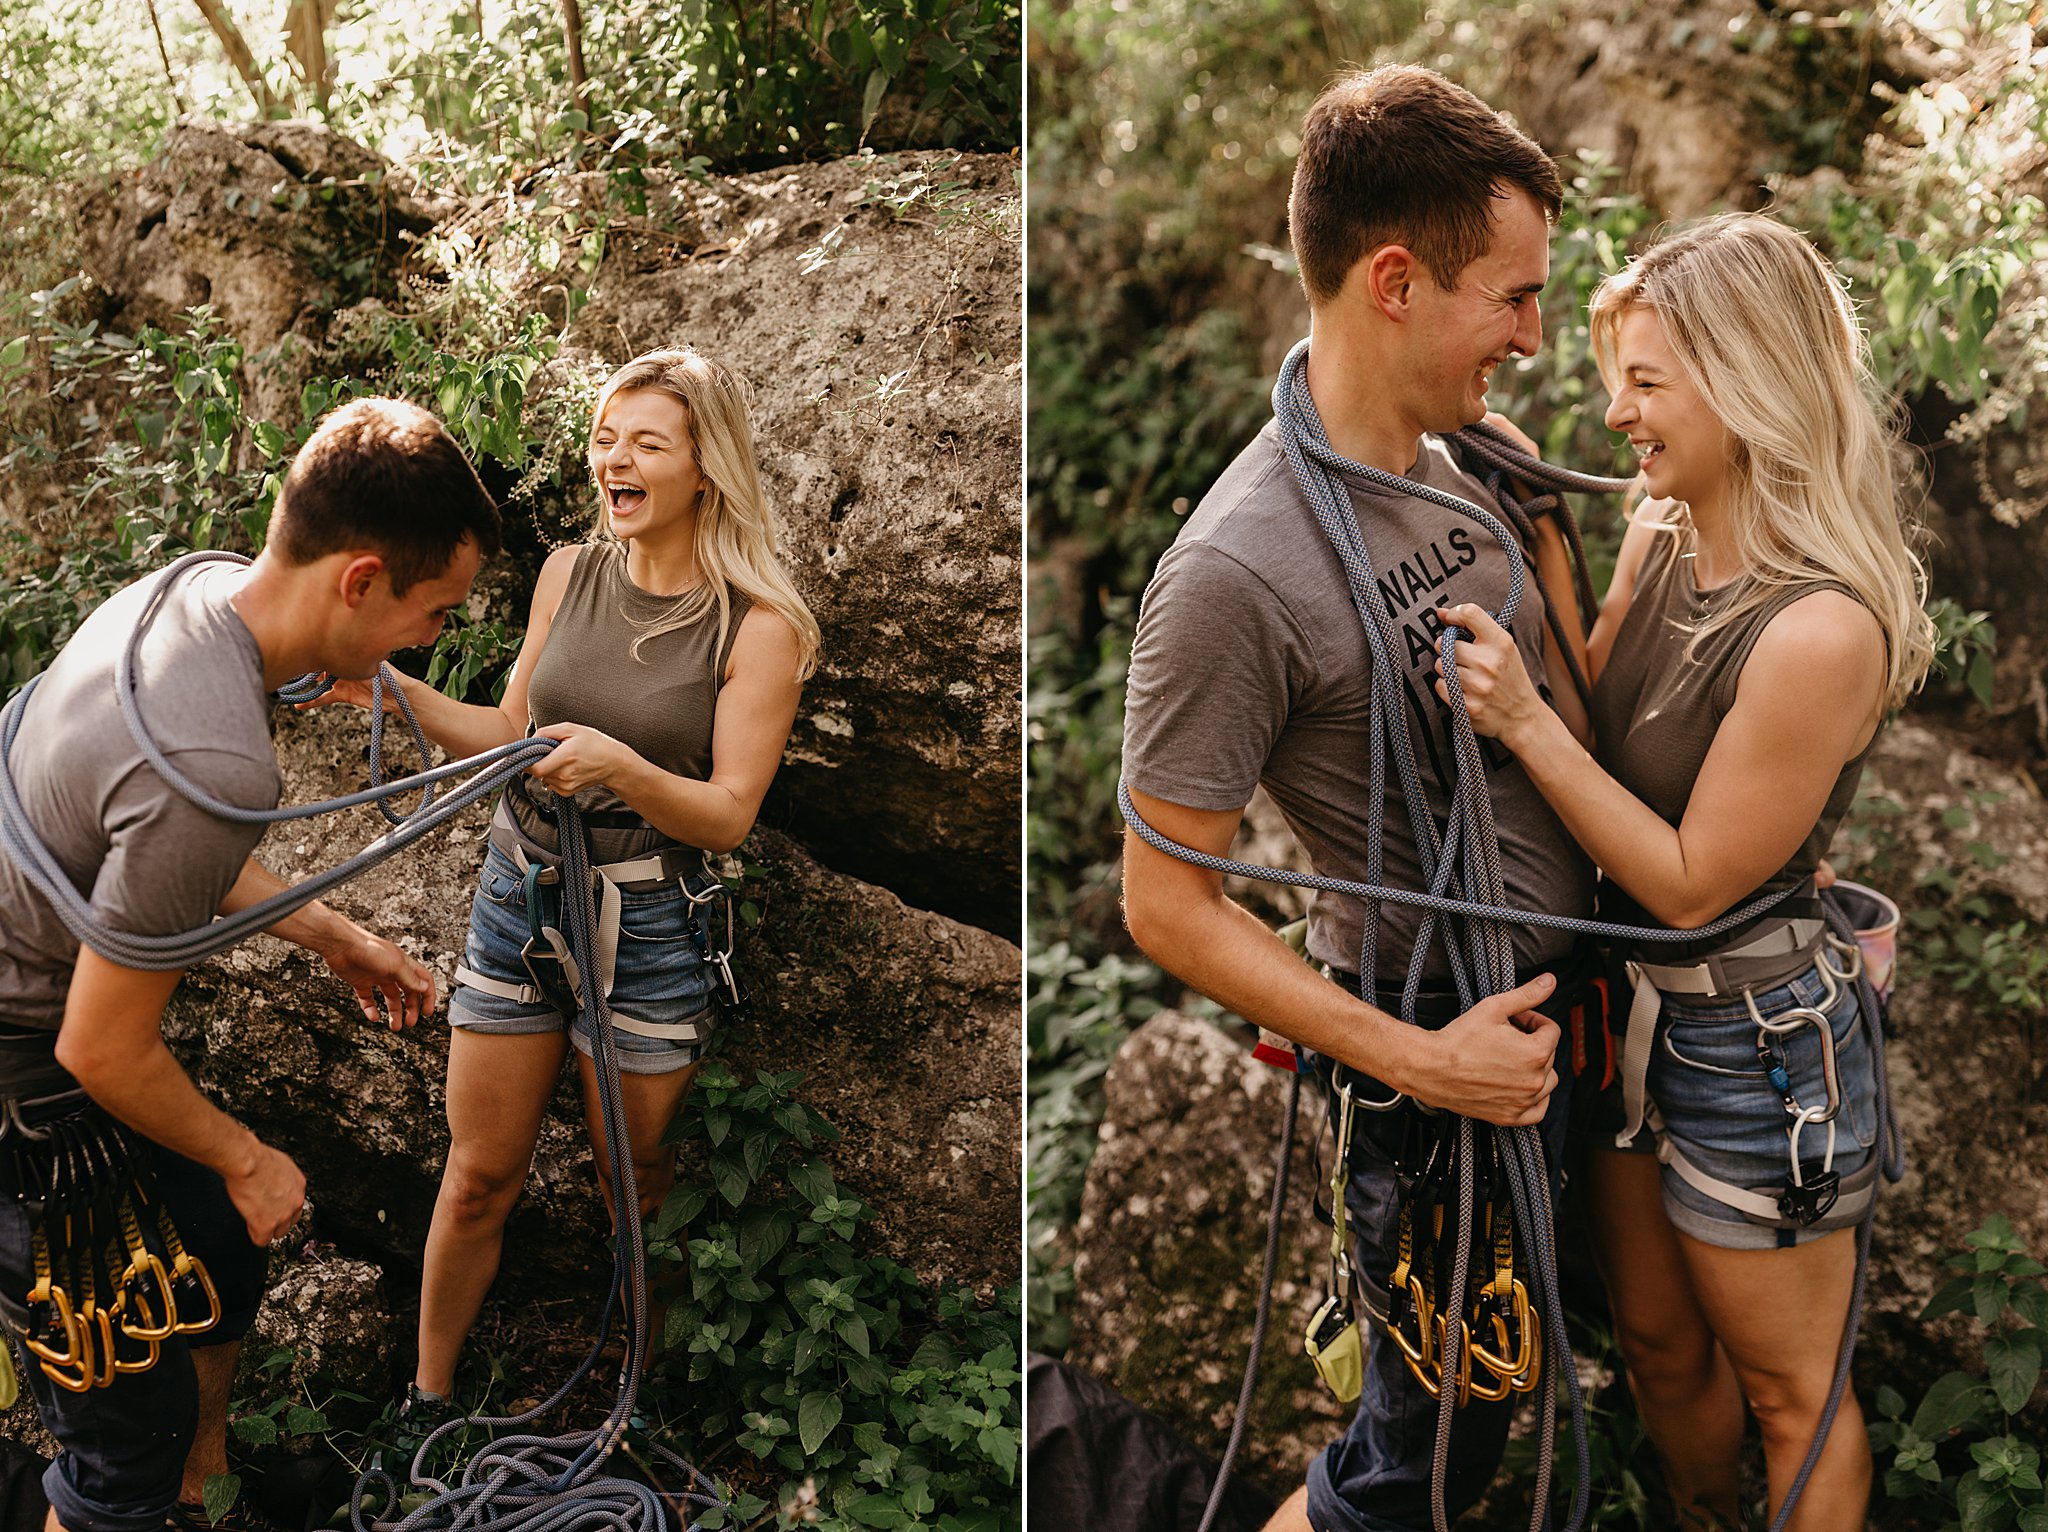 Wilderlove Co_Wedding Photographer_Dripping Springs Photography_Adventure Engagemenet_Rock Climbing Engagement_Hill Country Photographer_North Texas Photographer_0003.jpg